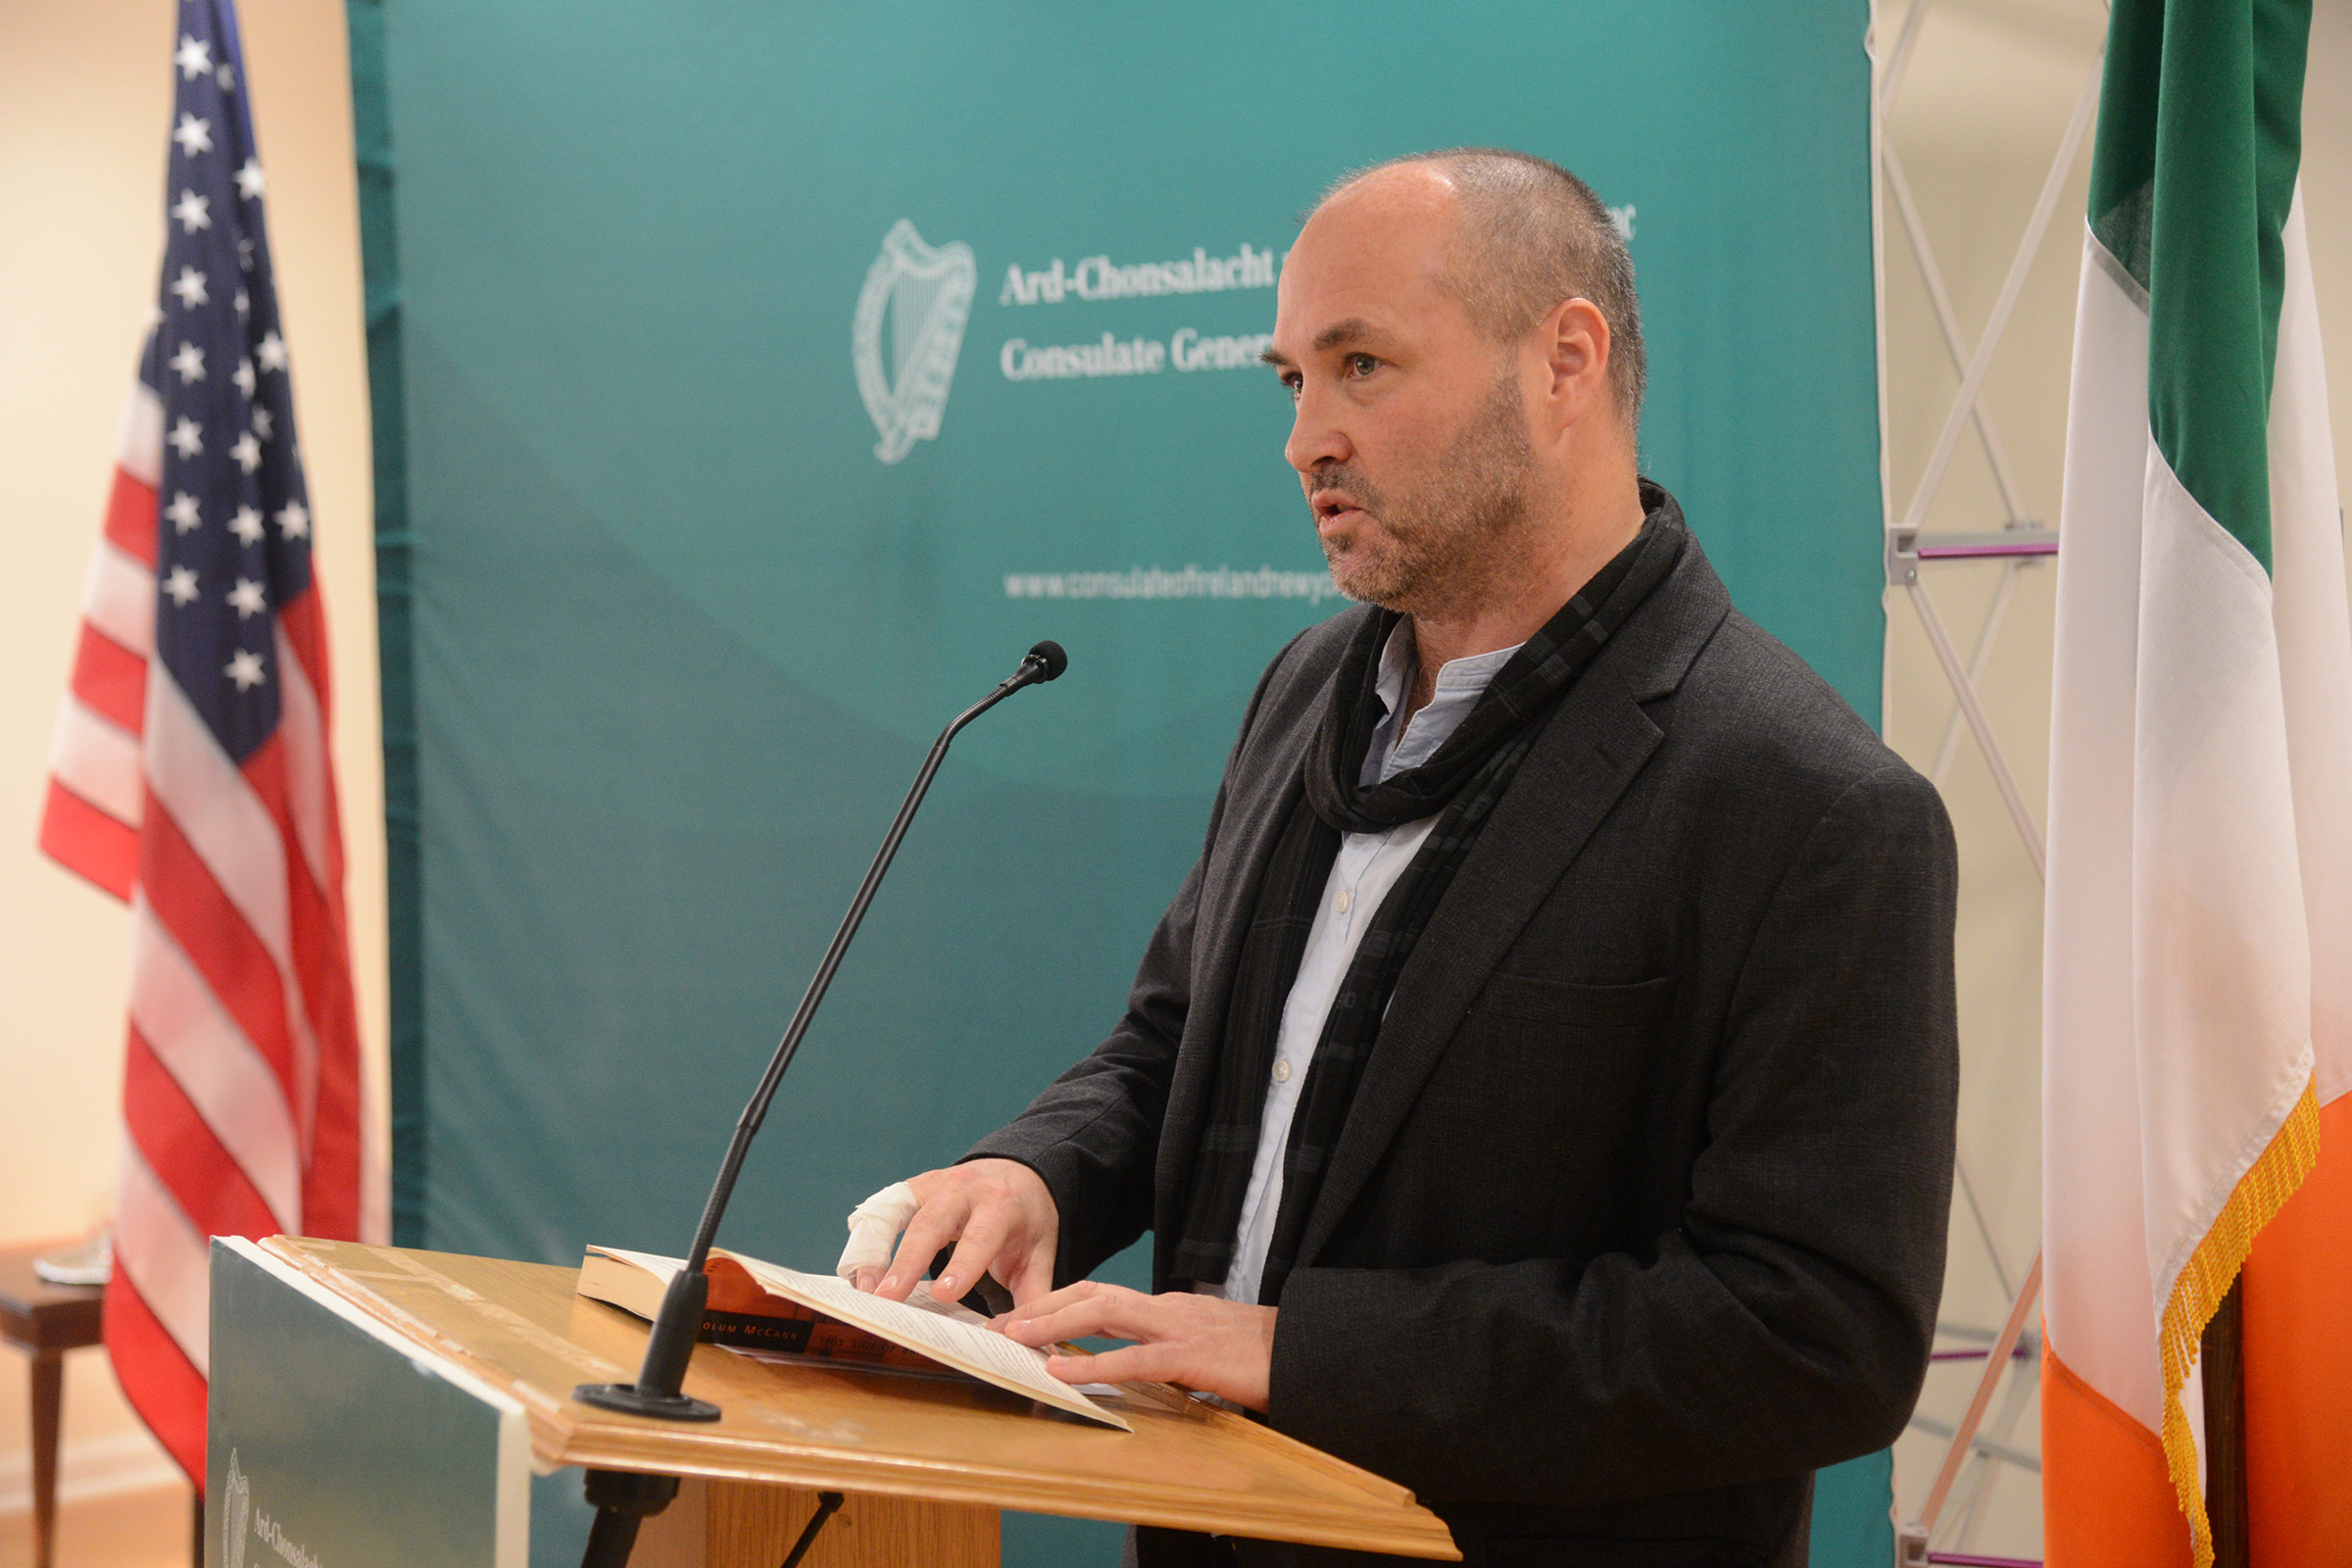 Author Colum McCann reads from one of his novels at the launch. (Photo: James Higgins)